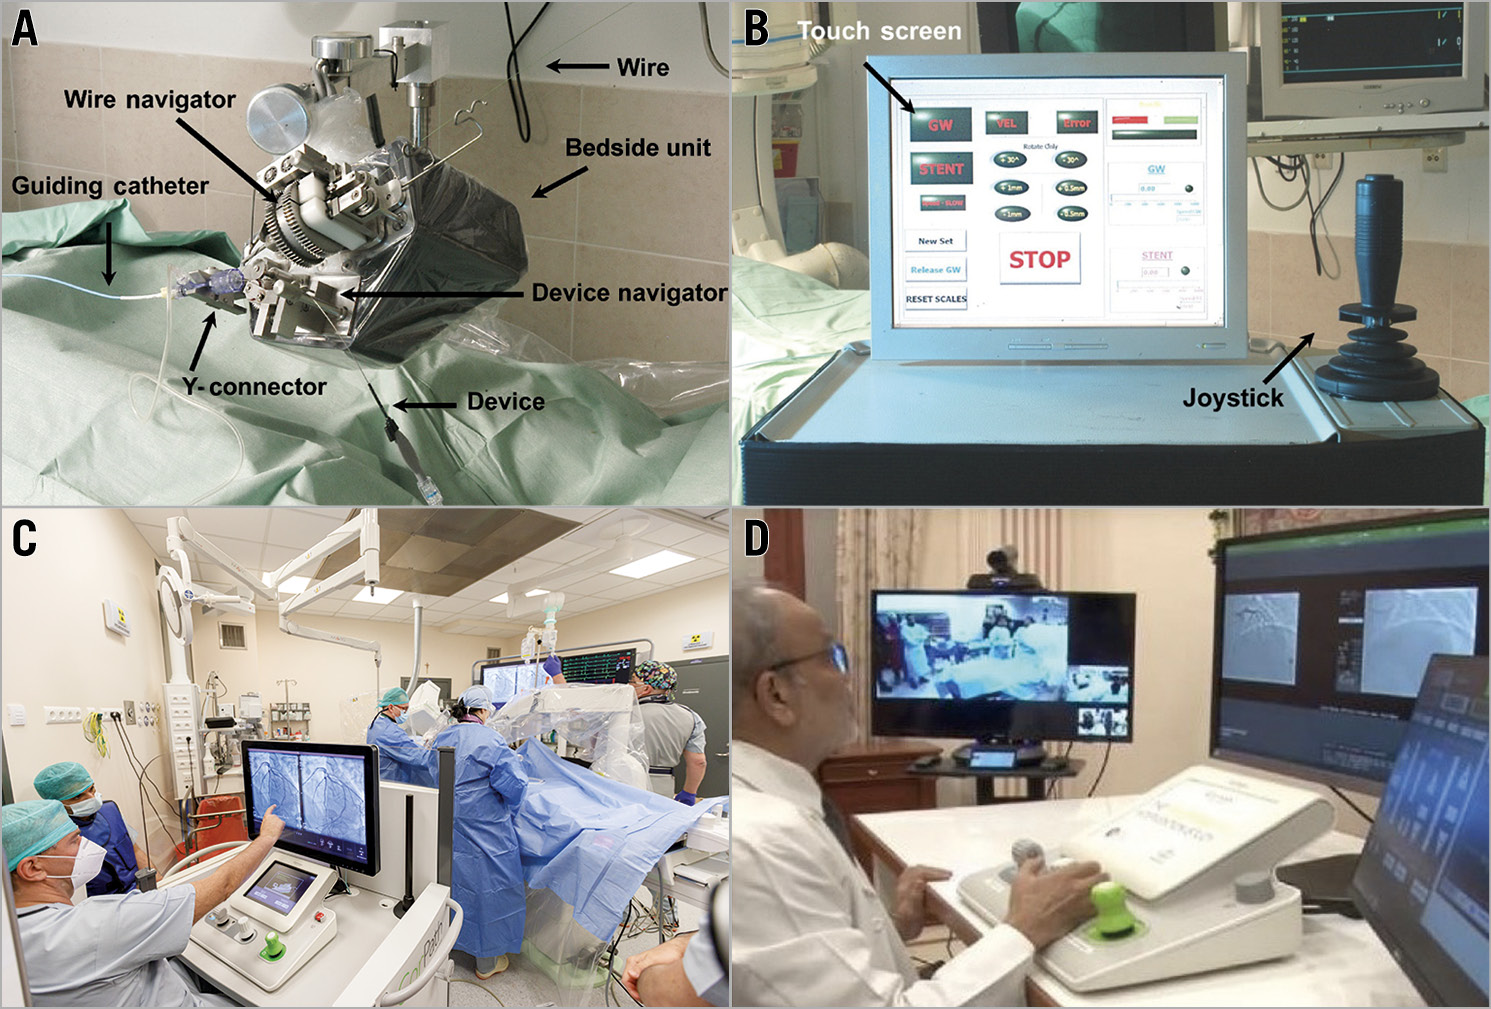 Figure 3. The evolution of the robotic PCI system and concept. A) The original Remote Navigation System manipulating wire and device are controlled at the console by a joystick (B). Reprinted from Beyar et al55, with permission from Elsevier. C) The current CorPath GRX control station60 is positioned within a shielded cockpit in the catheterisation laboratory with the operator console controlling the wire, the device, and the guide catheter (taken during robotic PCI at the Interventional Cardiology Center, Jagiellonian University Hospital, Poland). D) Set-up for the first remote catheterisation performed by Dr Tejas Patel in Ahmadabad, India. The control station is located 35 km away from the catheterisation laboratory, with the robotic arm at the patient side. The video of the patient room and the monitor screen are transmitted via the internet. From Patel et al79 [CC BY-NC-ND 4.0].